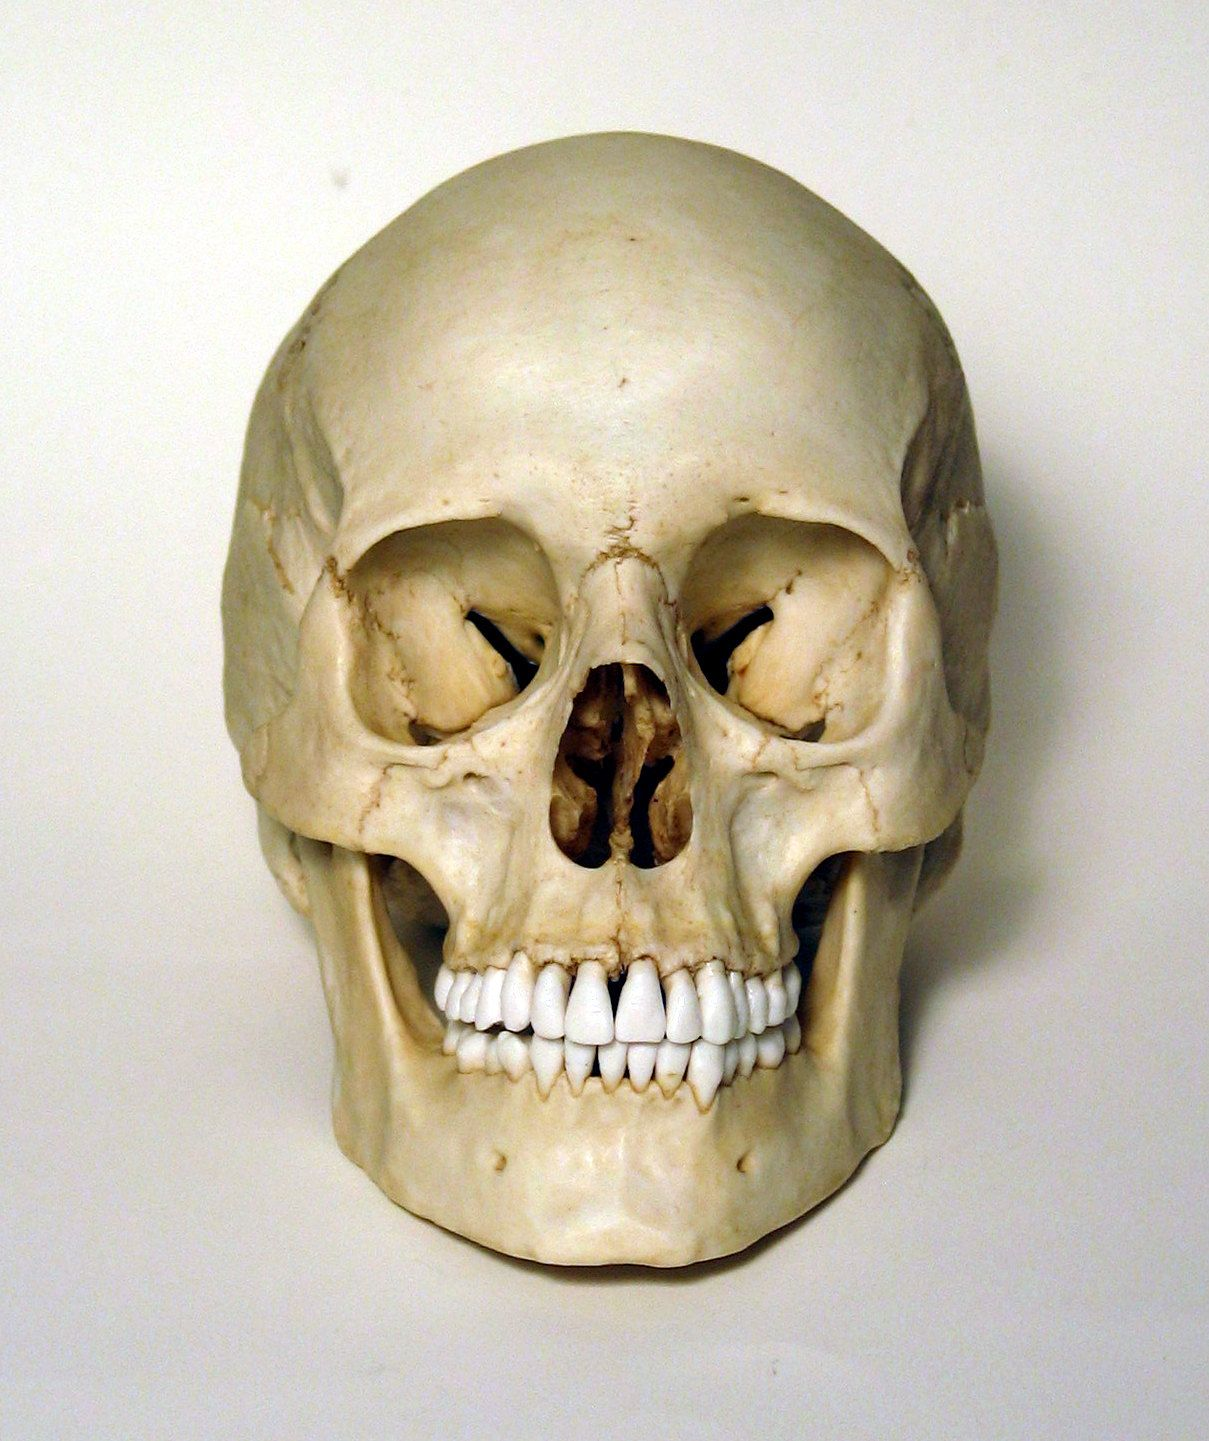 Female Human Skull Frontal View Photo